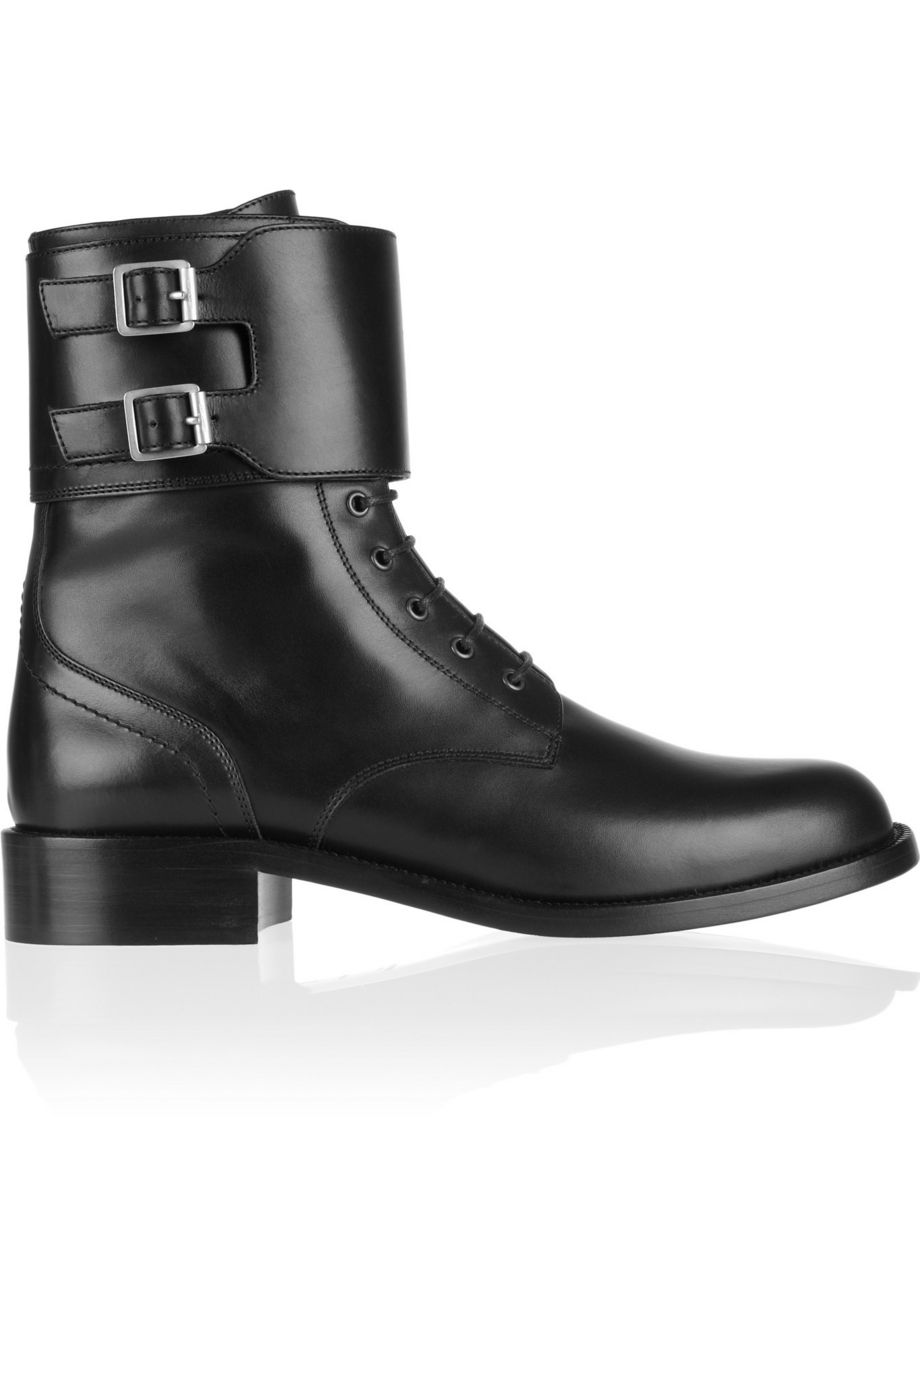 Patti leather army boots by SAINT LAURENT, available on net-a-porter.com for $897 Alessandra Ambrosio Shoes Exact Product